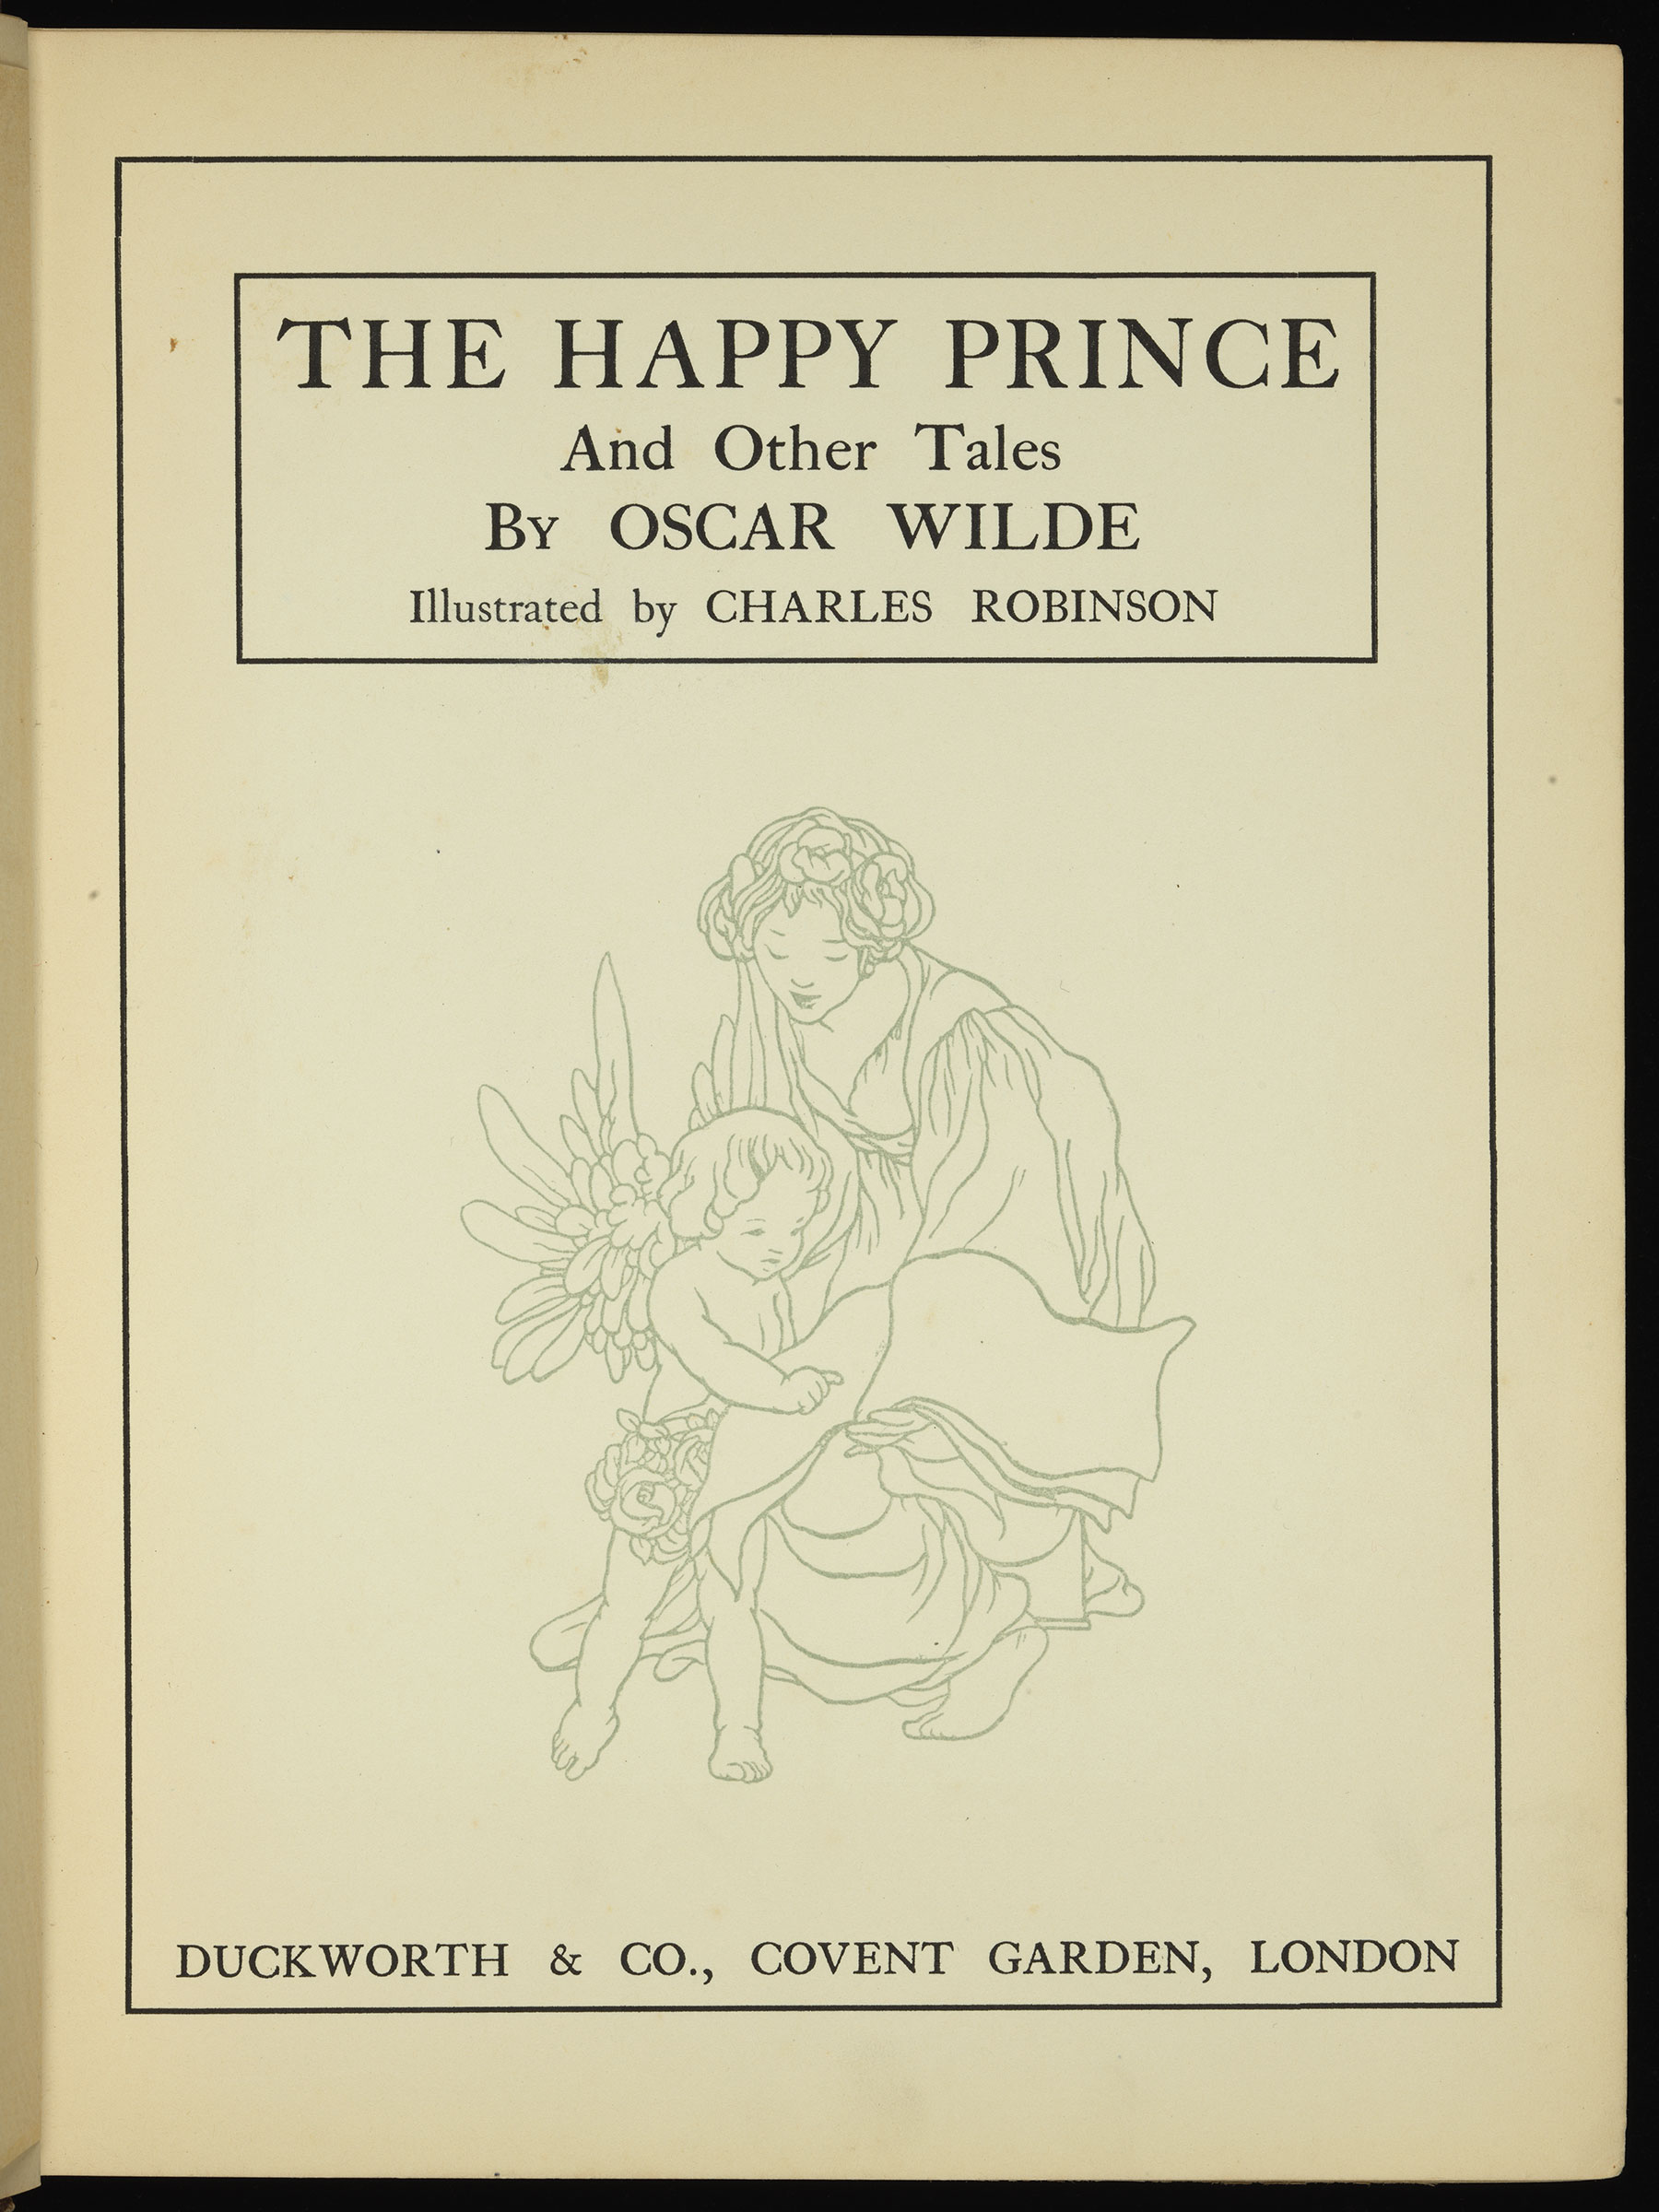 The self and the other in the happy prince and other tales 1888 by oscar wilde essay